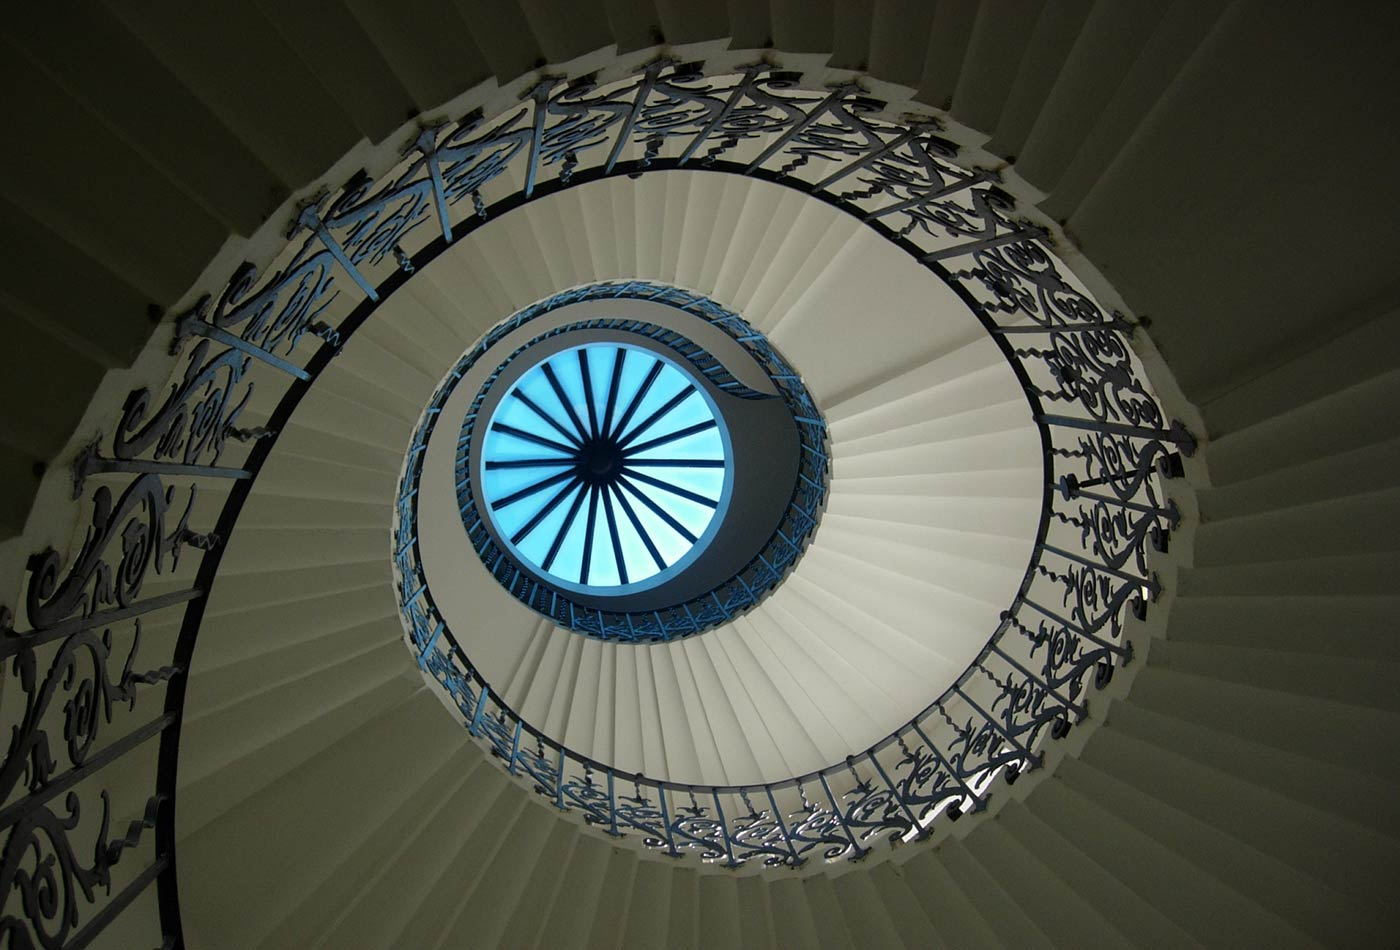 The Tulip Stairs and lantern at the Queen's House in Greenwich by Inigo Jones.